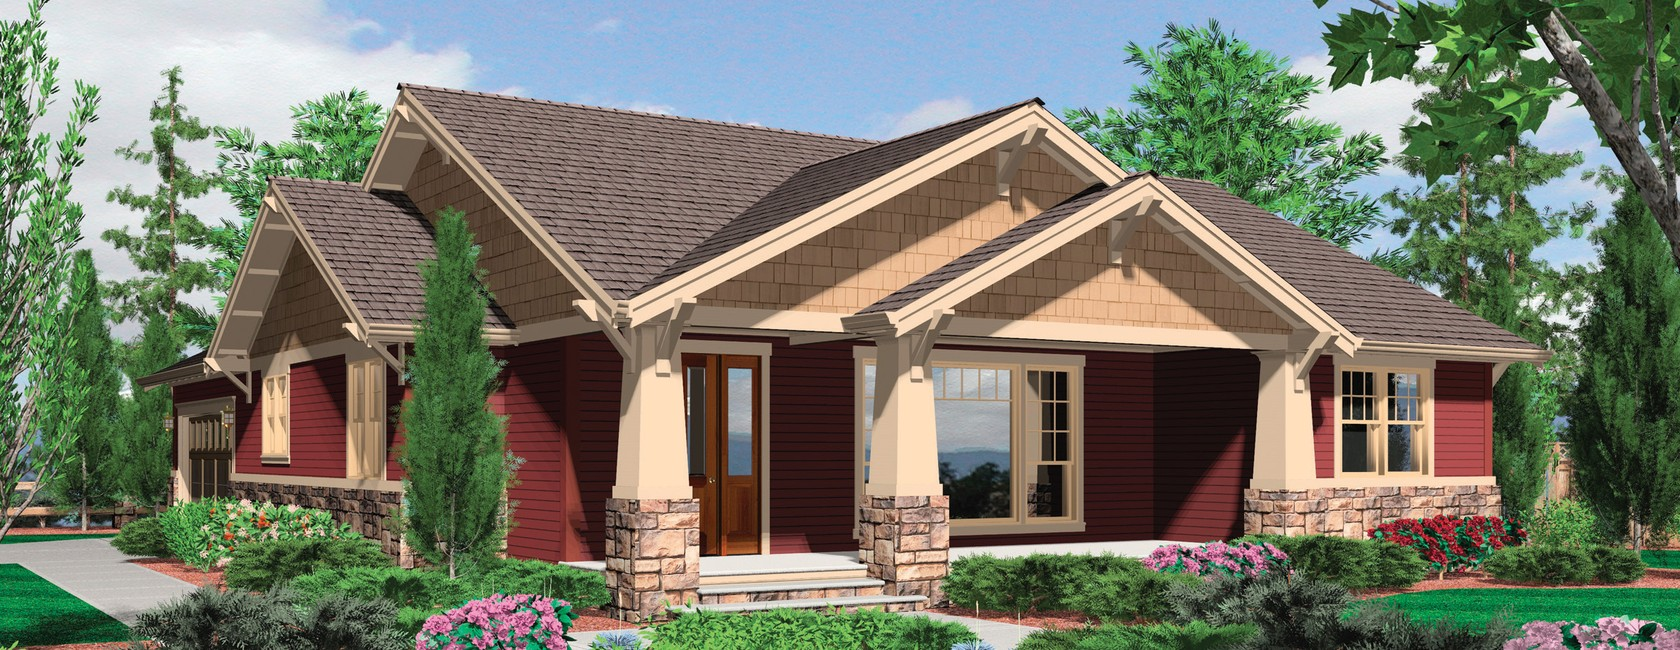 Affordable House Plans Tips For Finding Them In A Tight